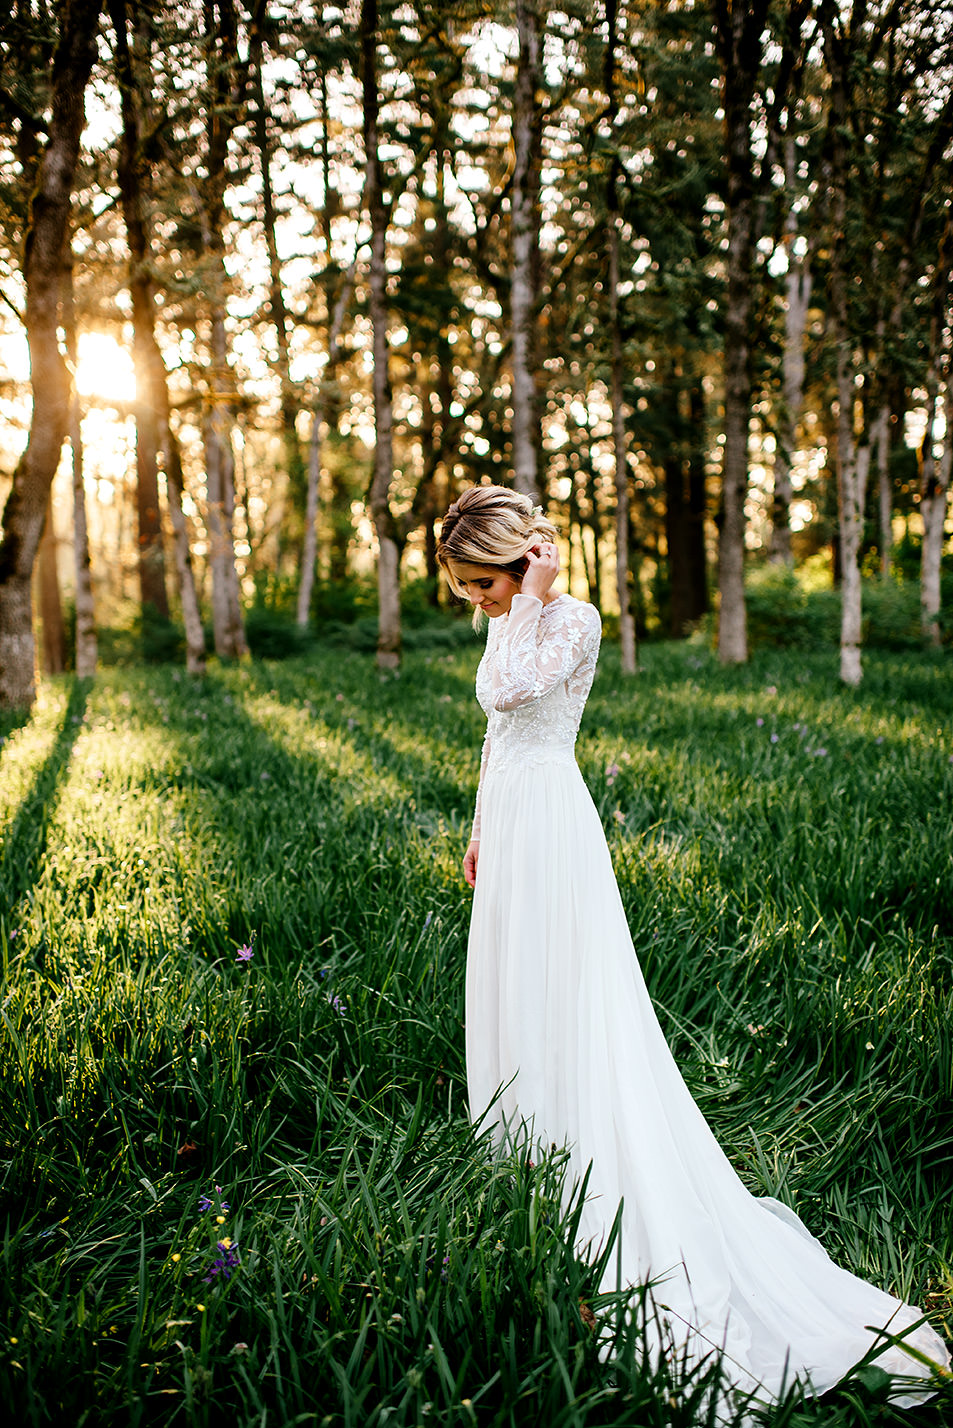 Portland-wedding-photographer-Spring-wedding-inspiration11.jpg